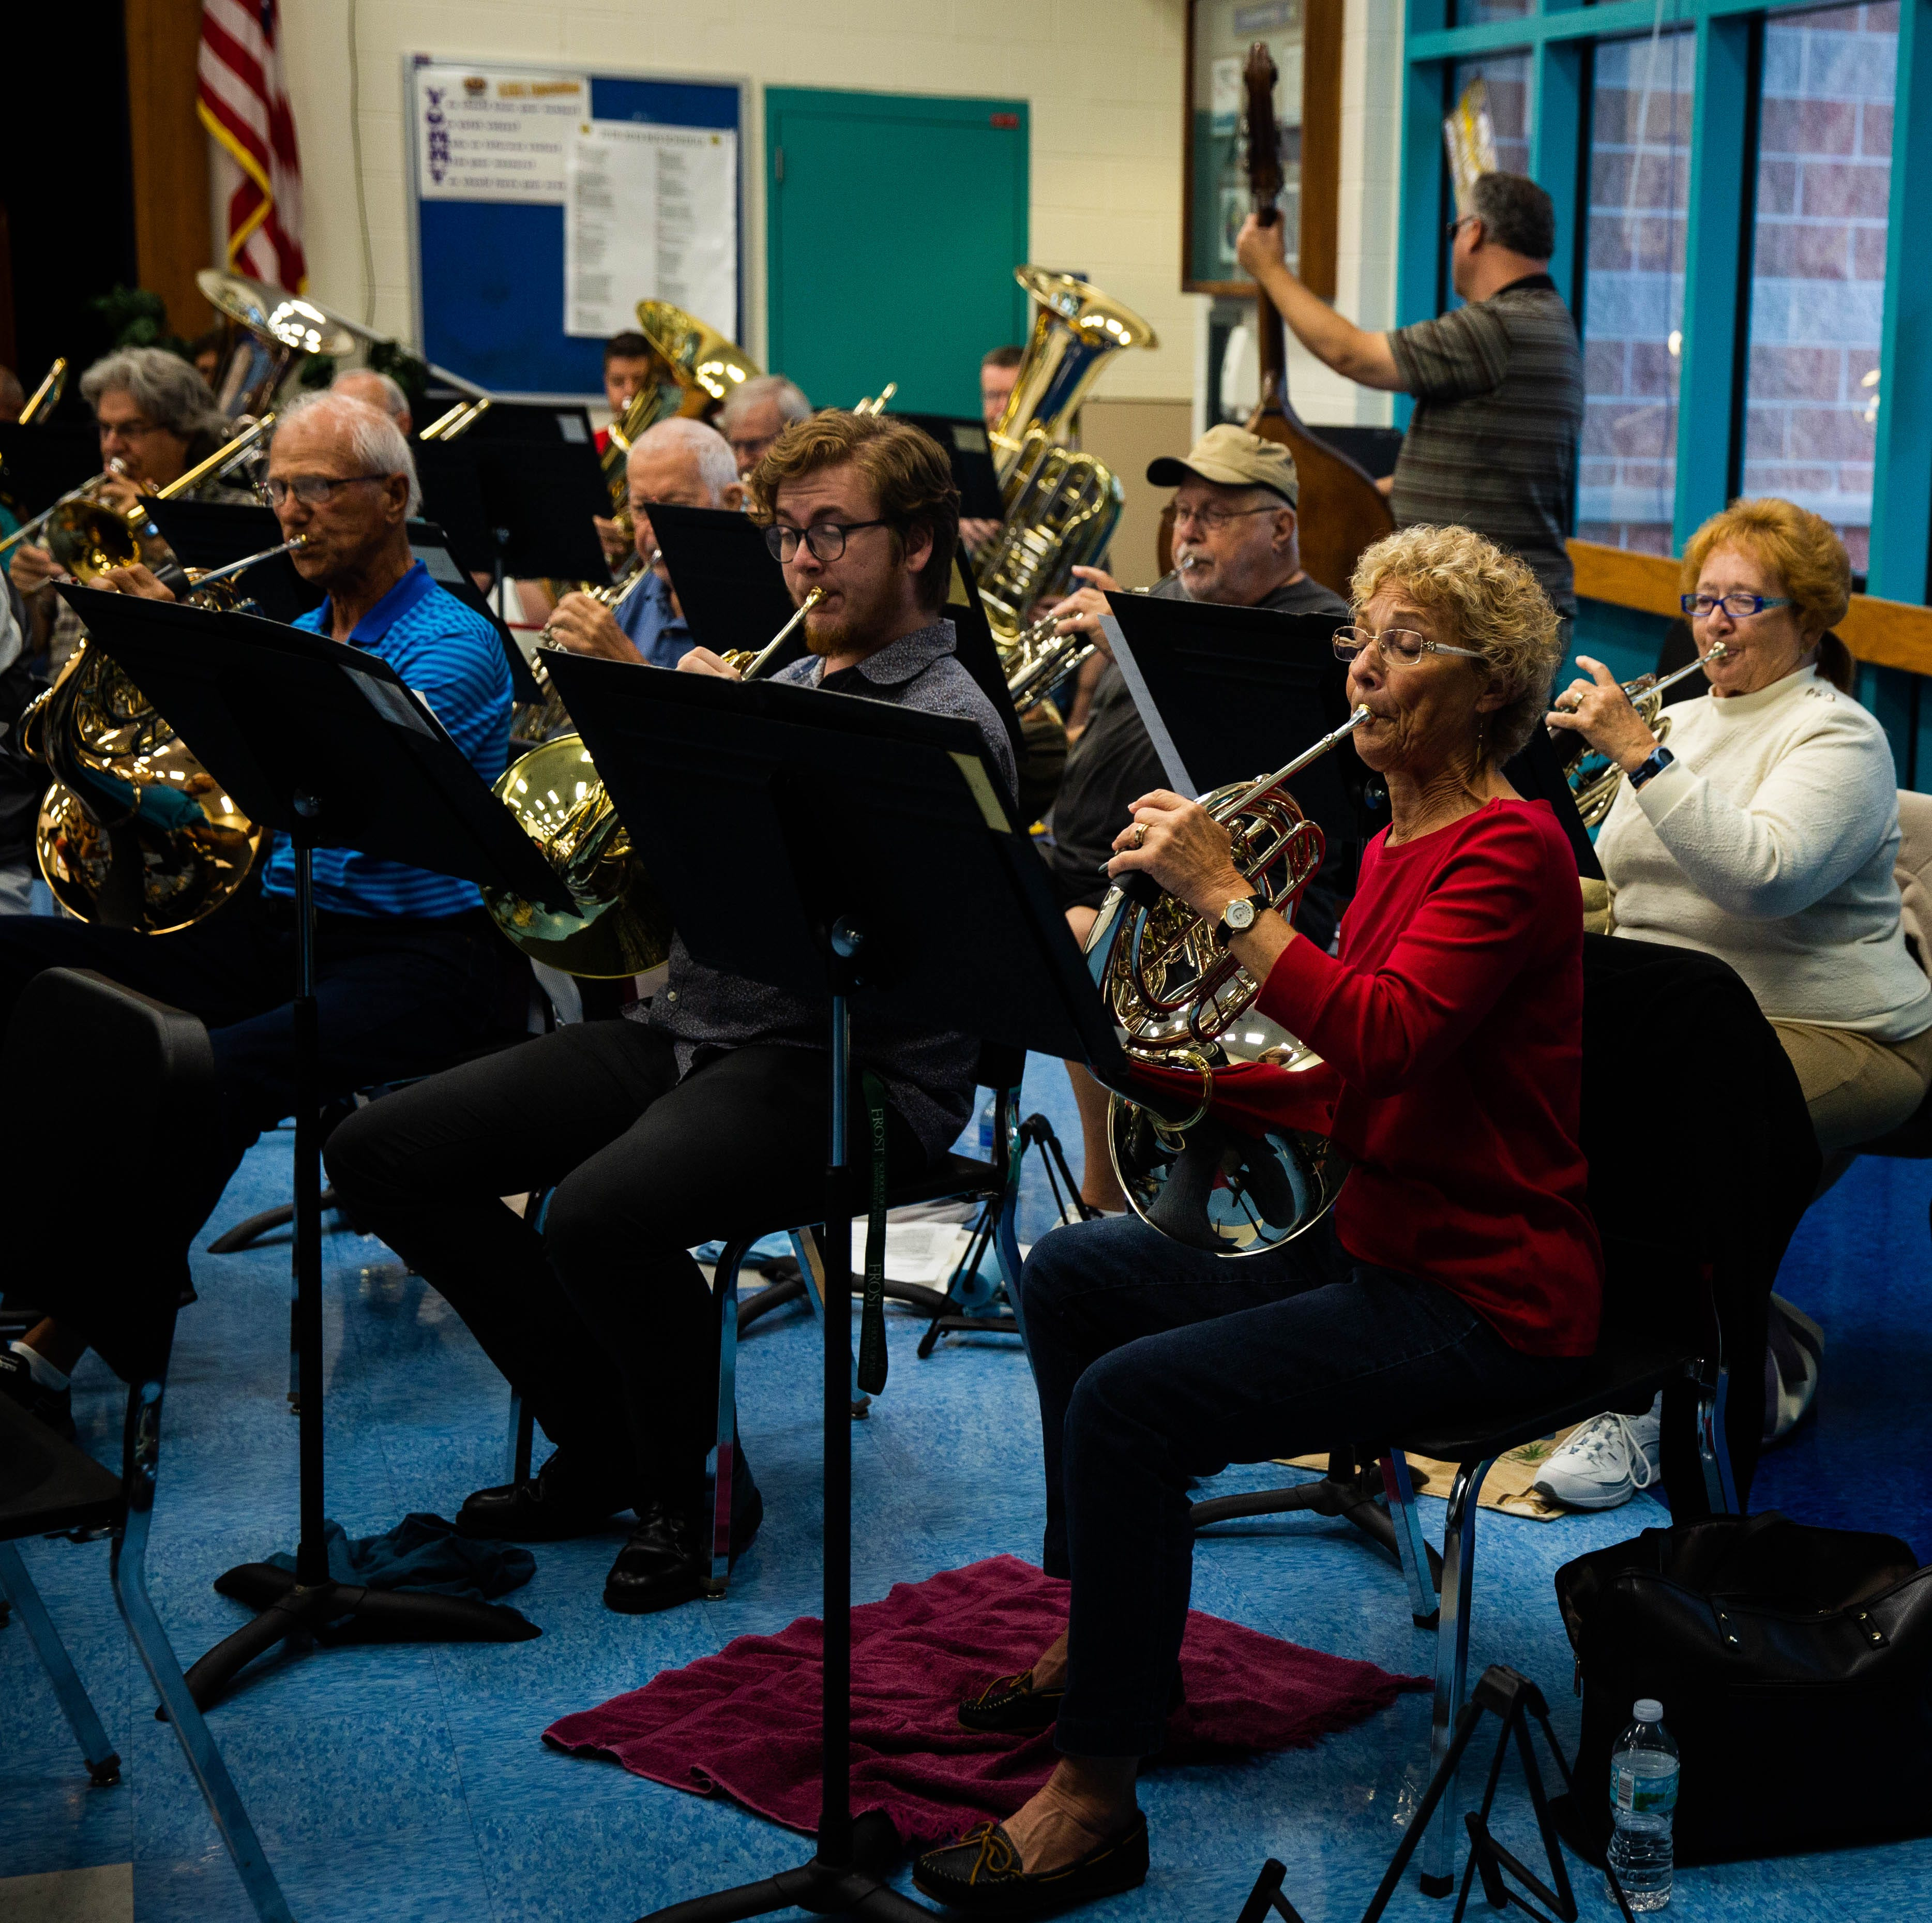 Sounds of silence: Tuesdays turn quiet at Gulfview Middle School as Naples Concert Band vacates